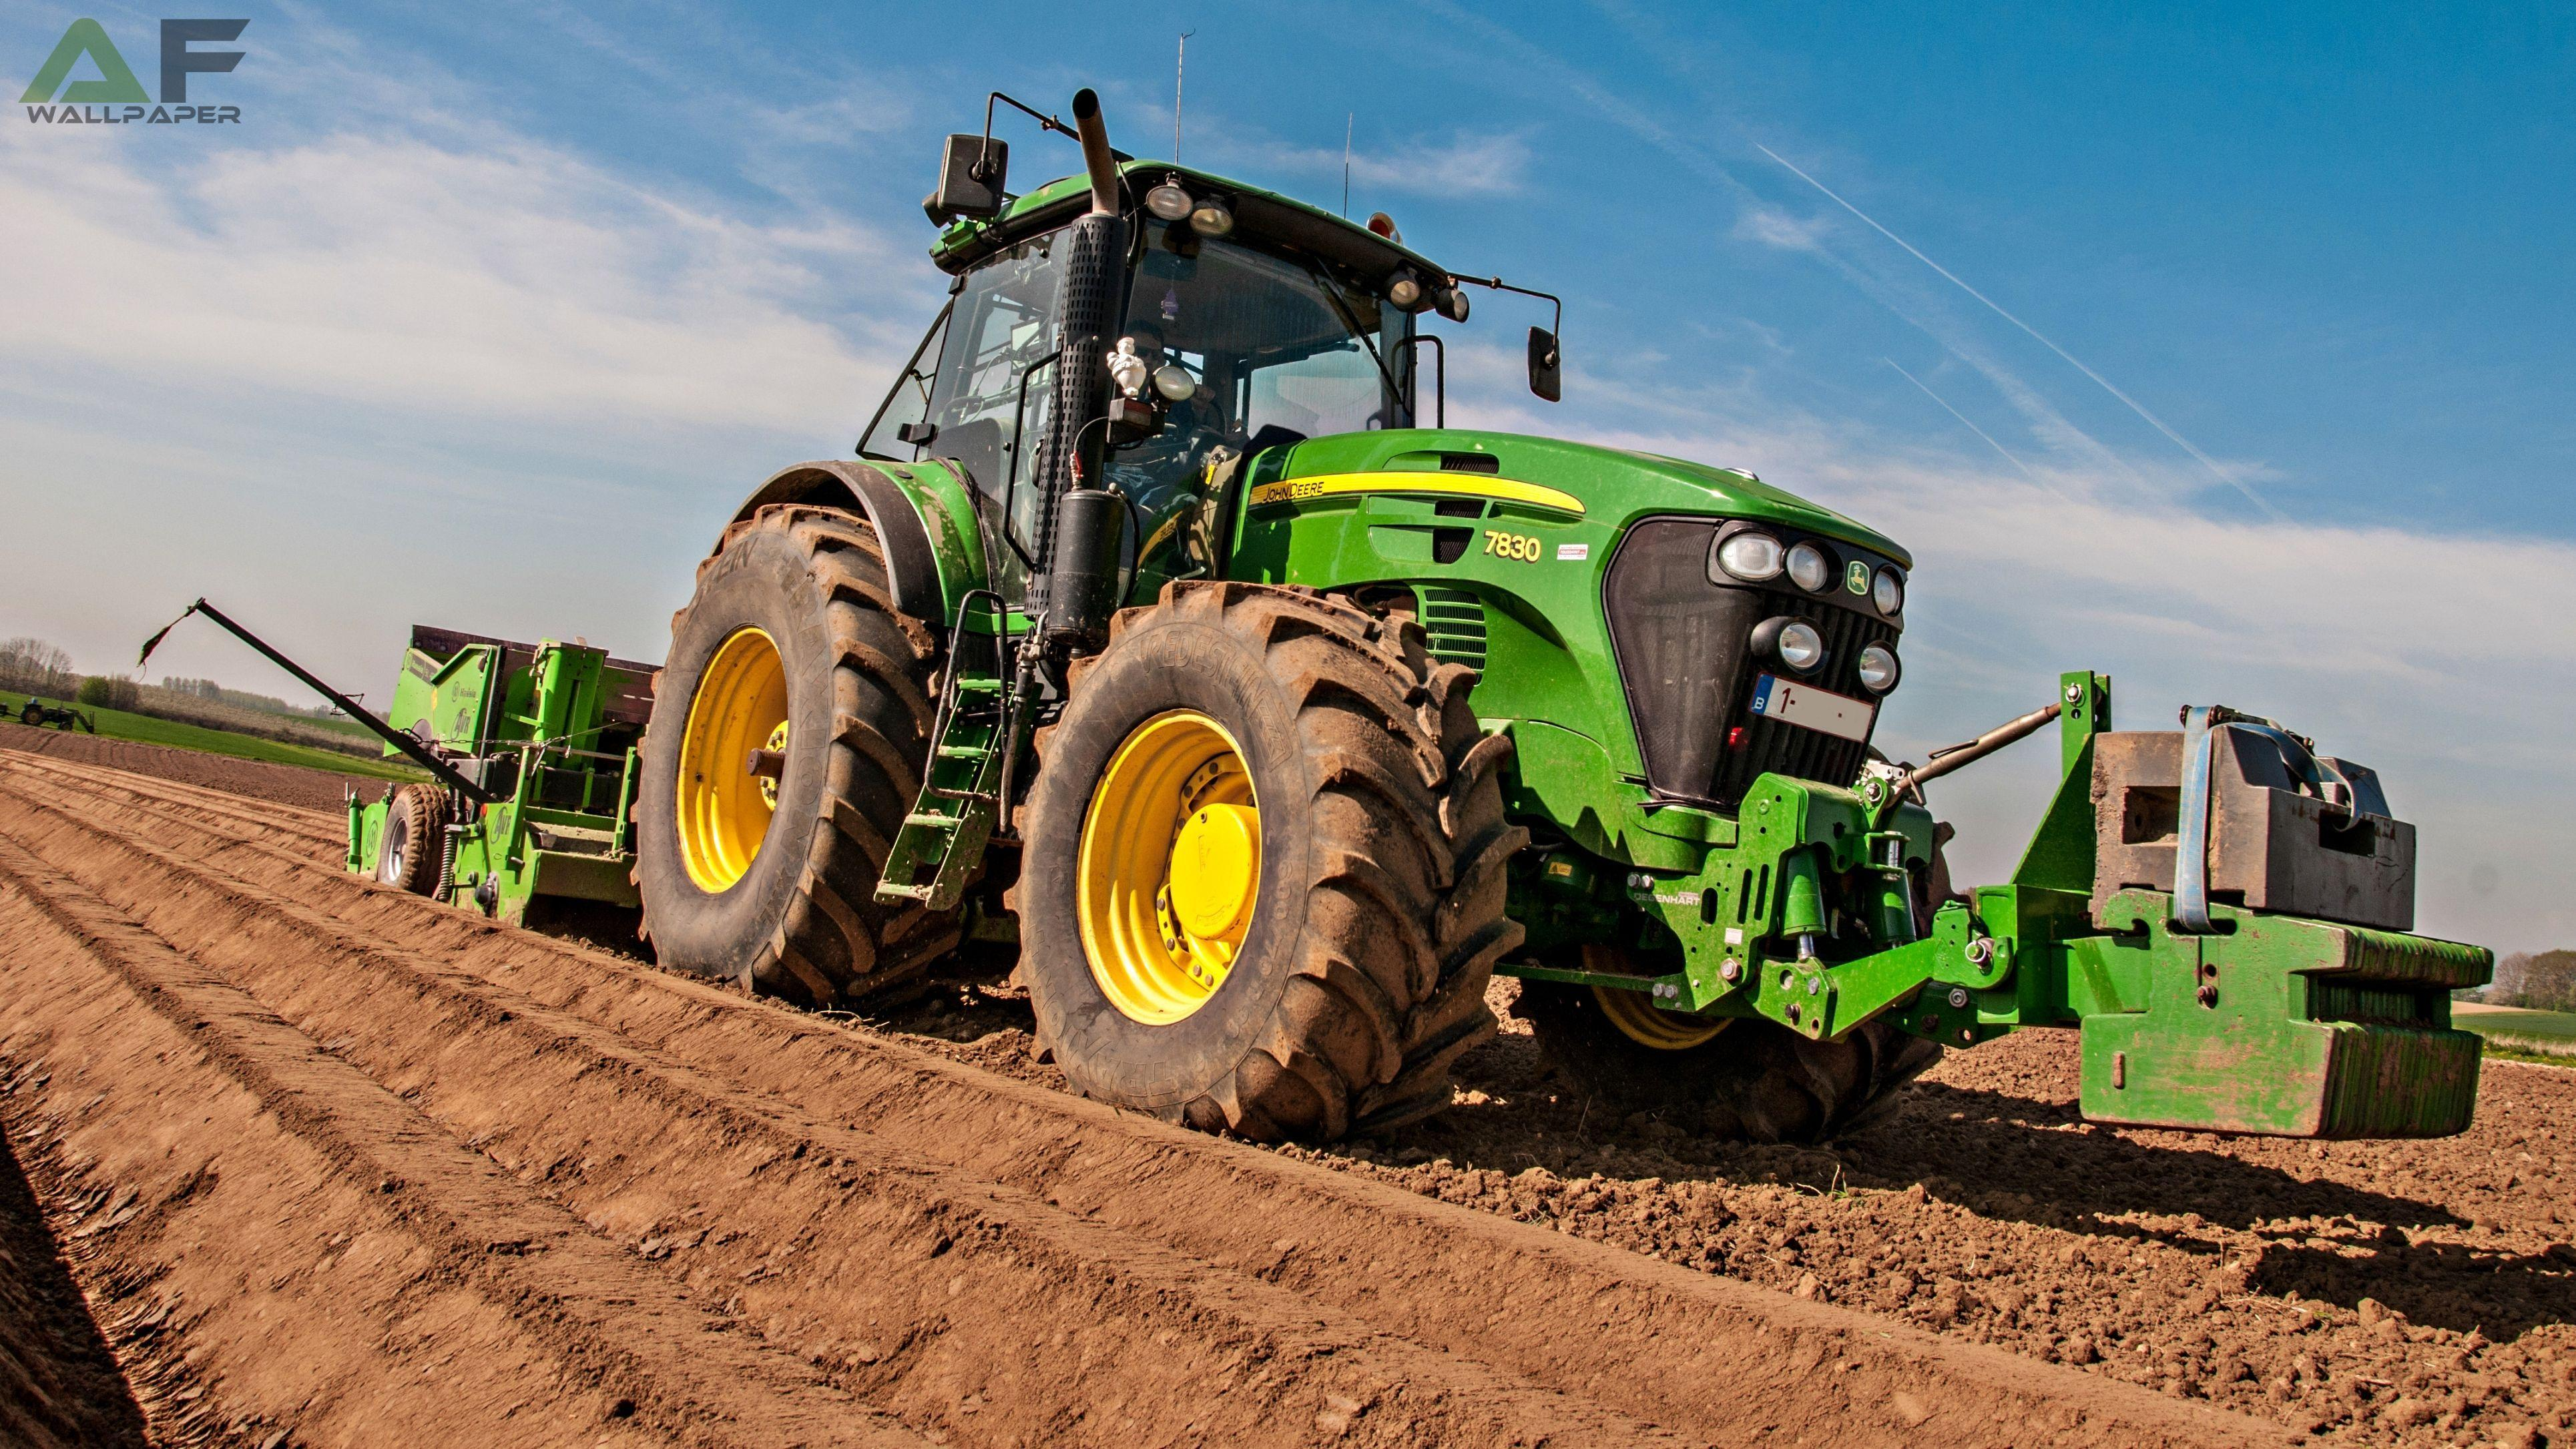 John Deere Wallpaper HD | Wallpapers, Backgrounds, Images, Art Photos.